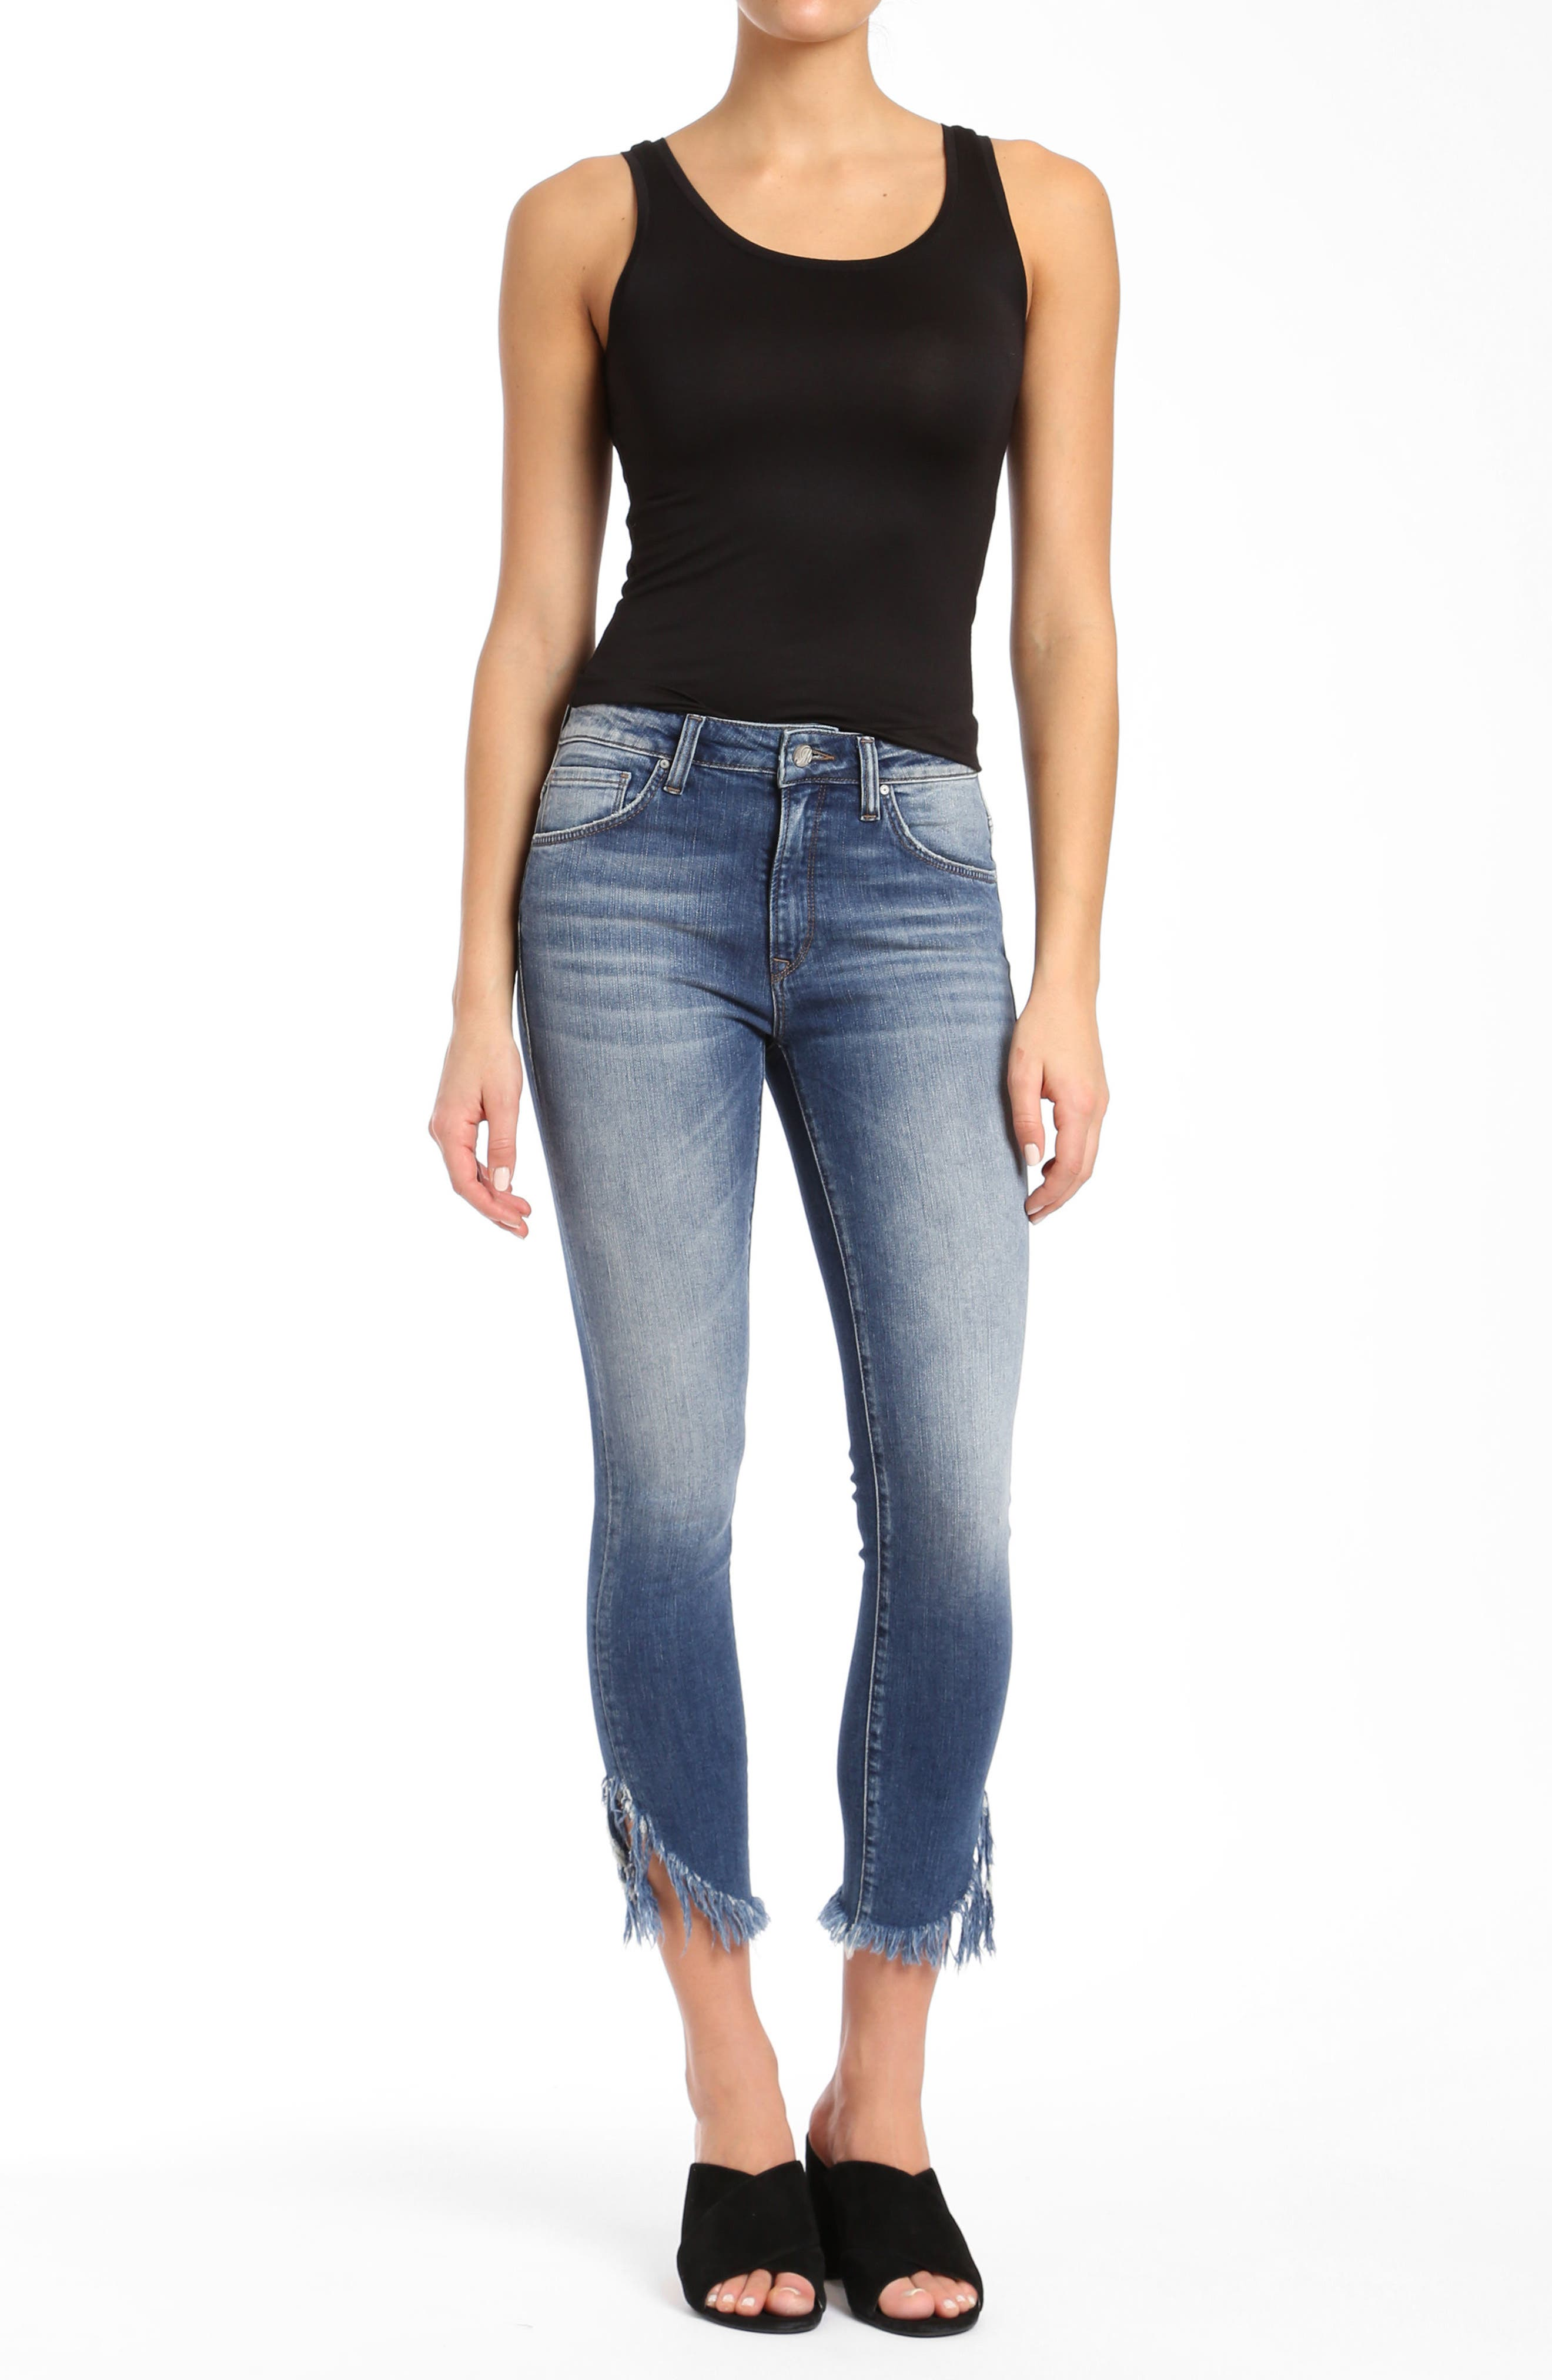 Tess Extreme Ripped Super Skinny Jeans,                             Alternate thumbnail 4, color,                             EXTREME RIPPED VINTAGE